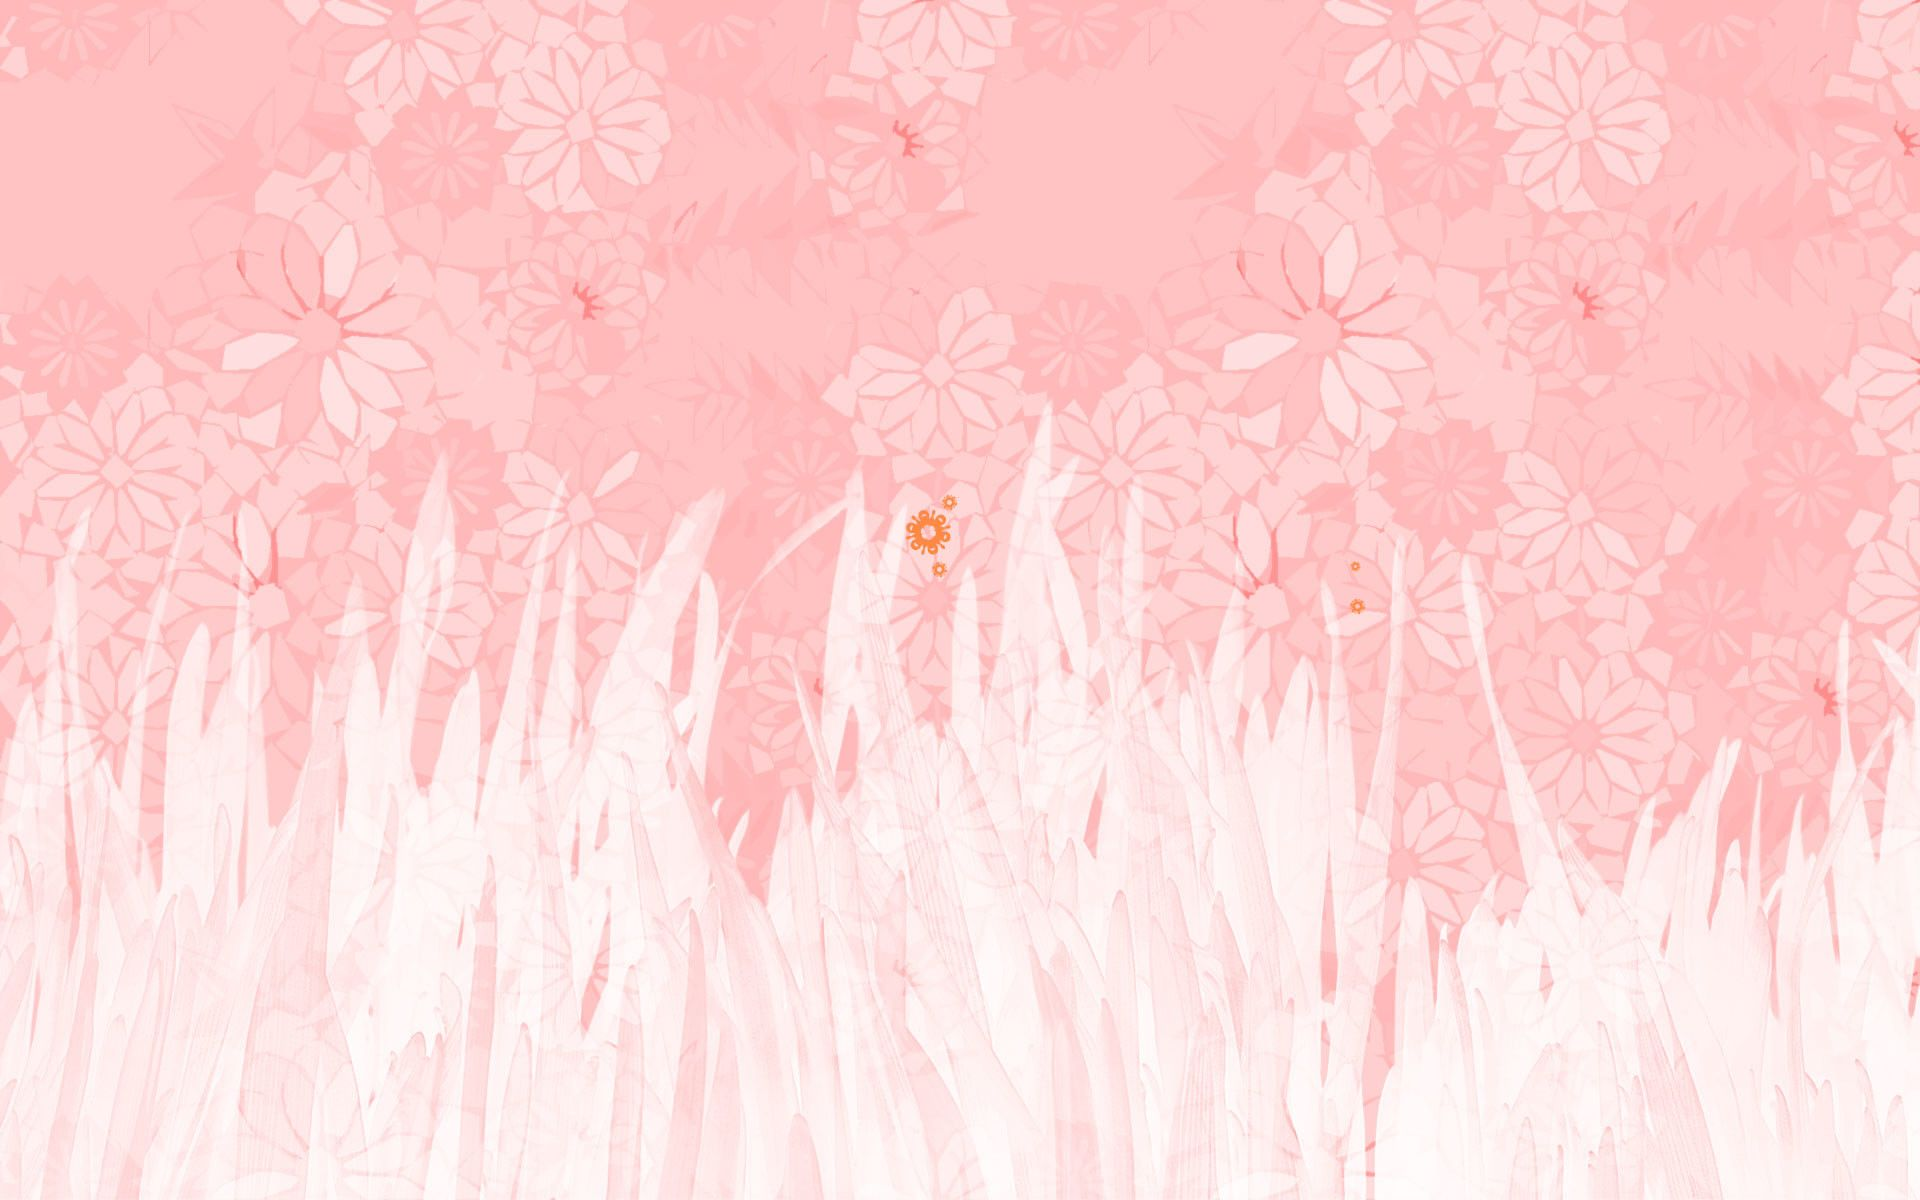 Pink Aesthetic Wallpaper Desktop Hd